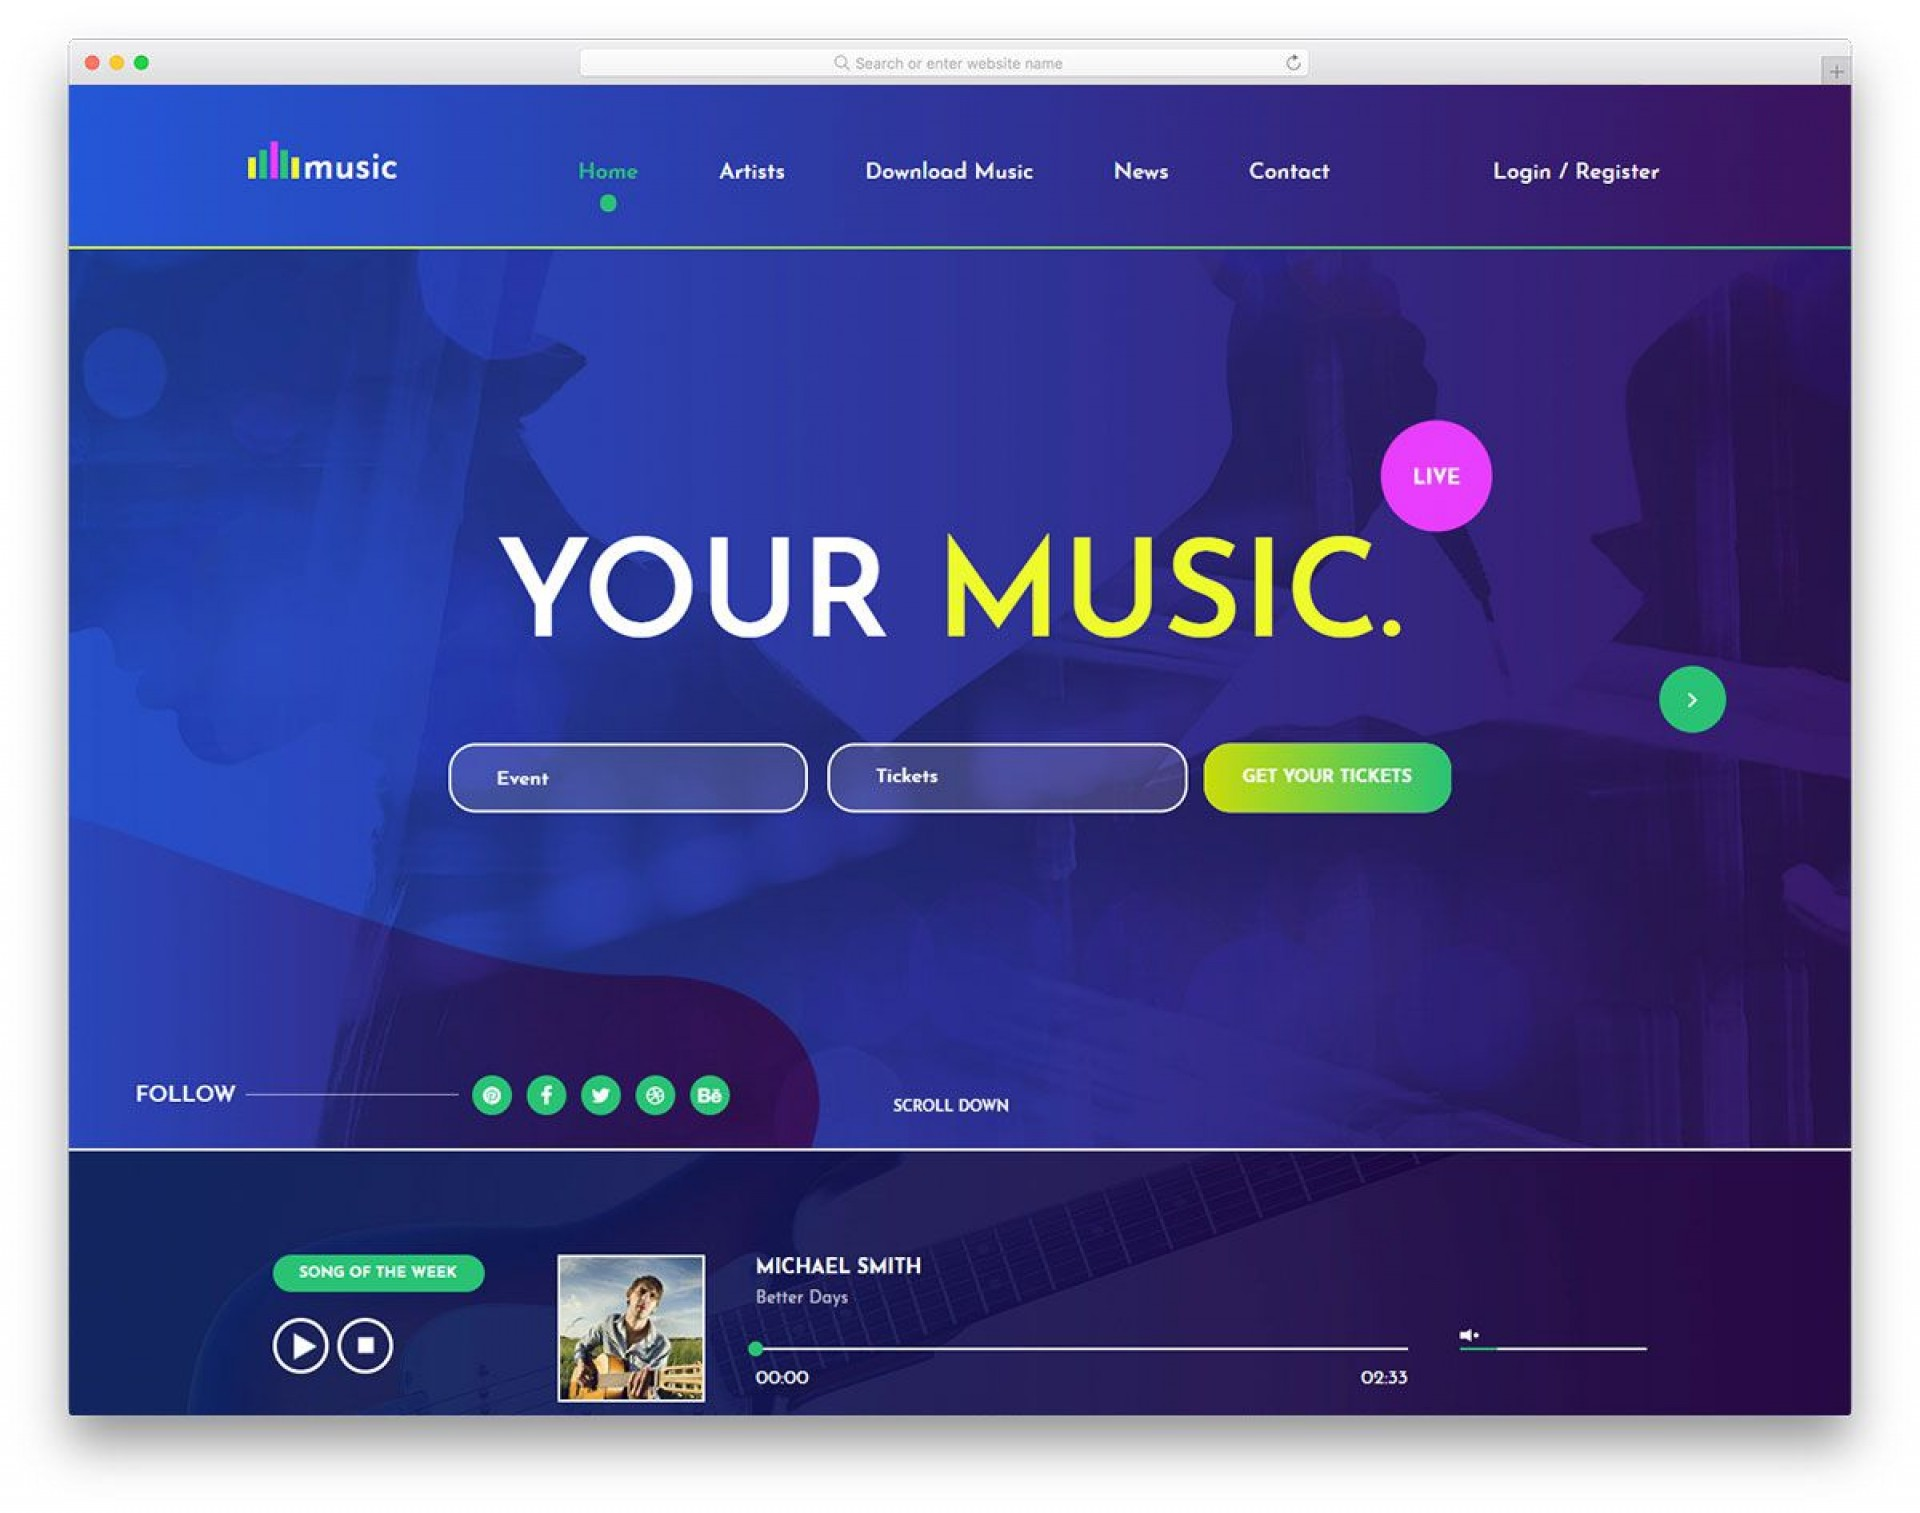 008 Breathtaking Music Marketing Plan Template Free Download Example 1920